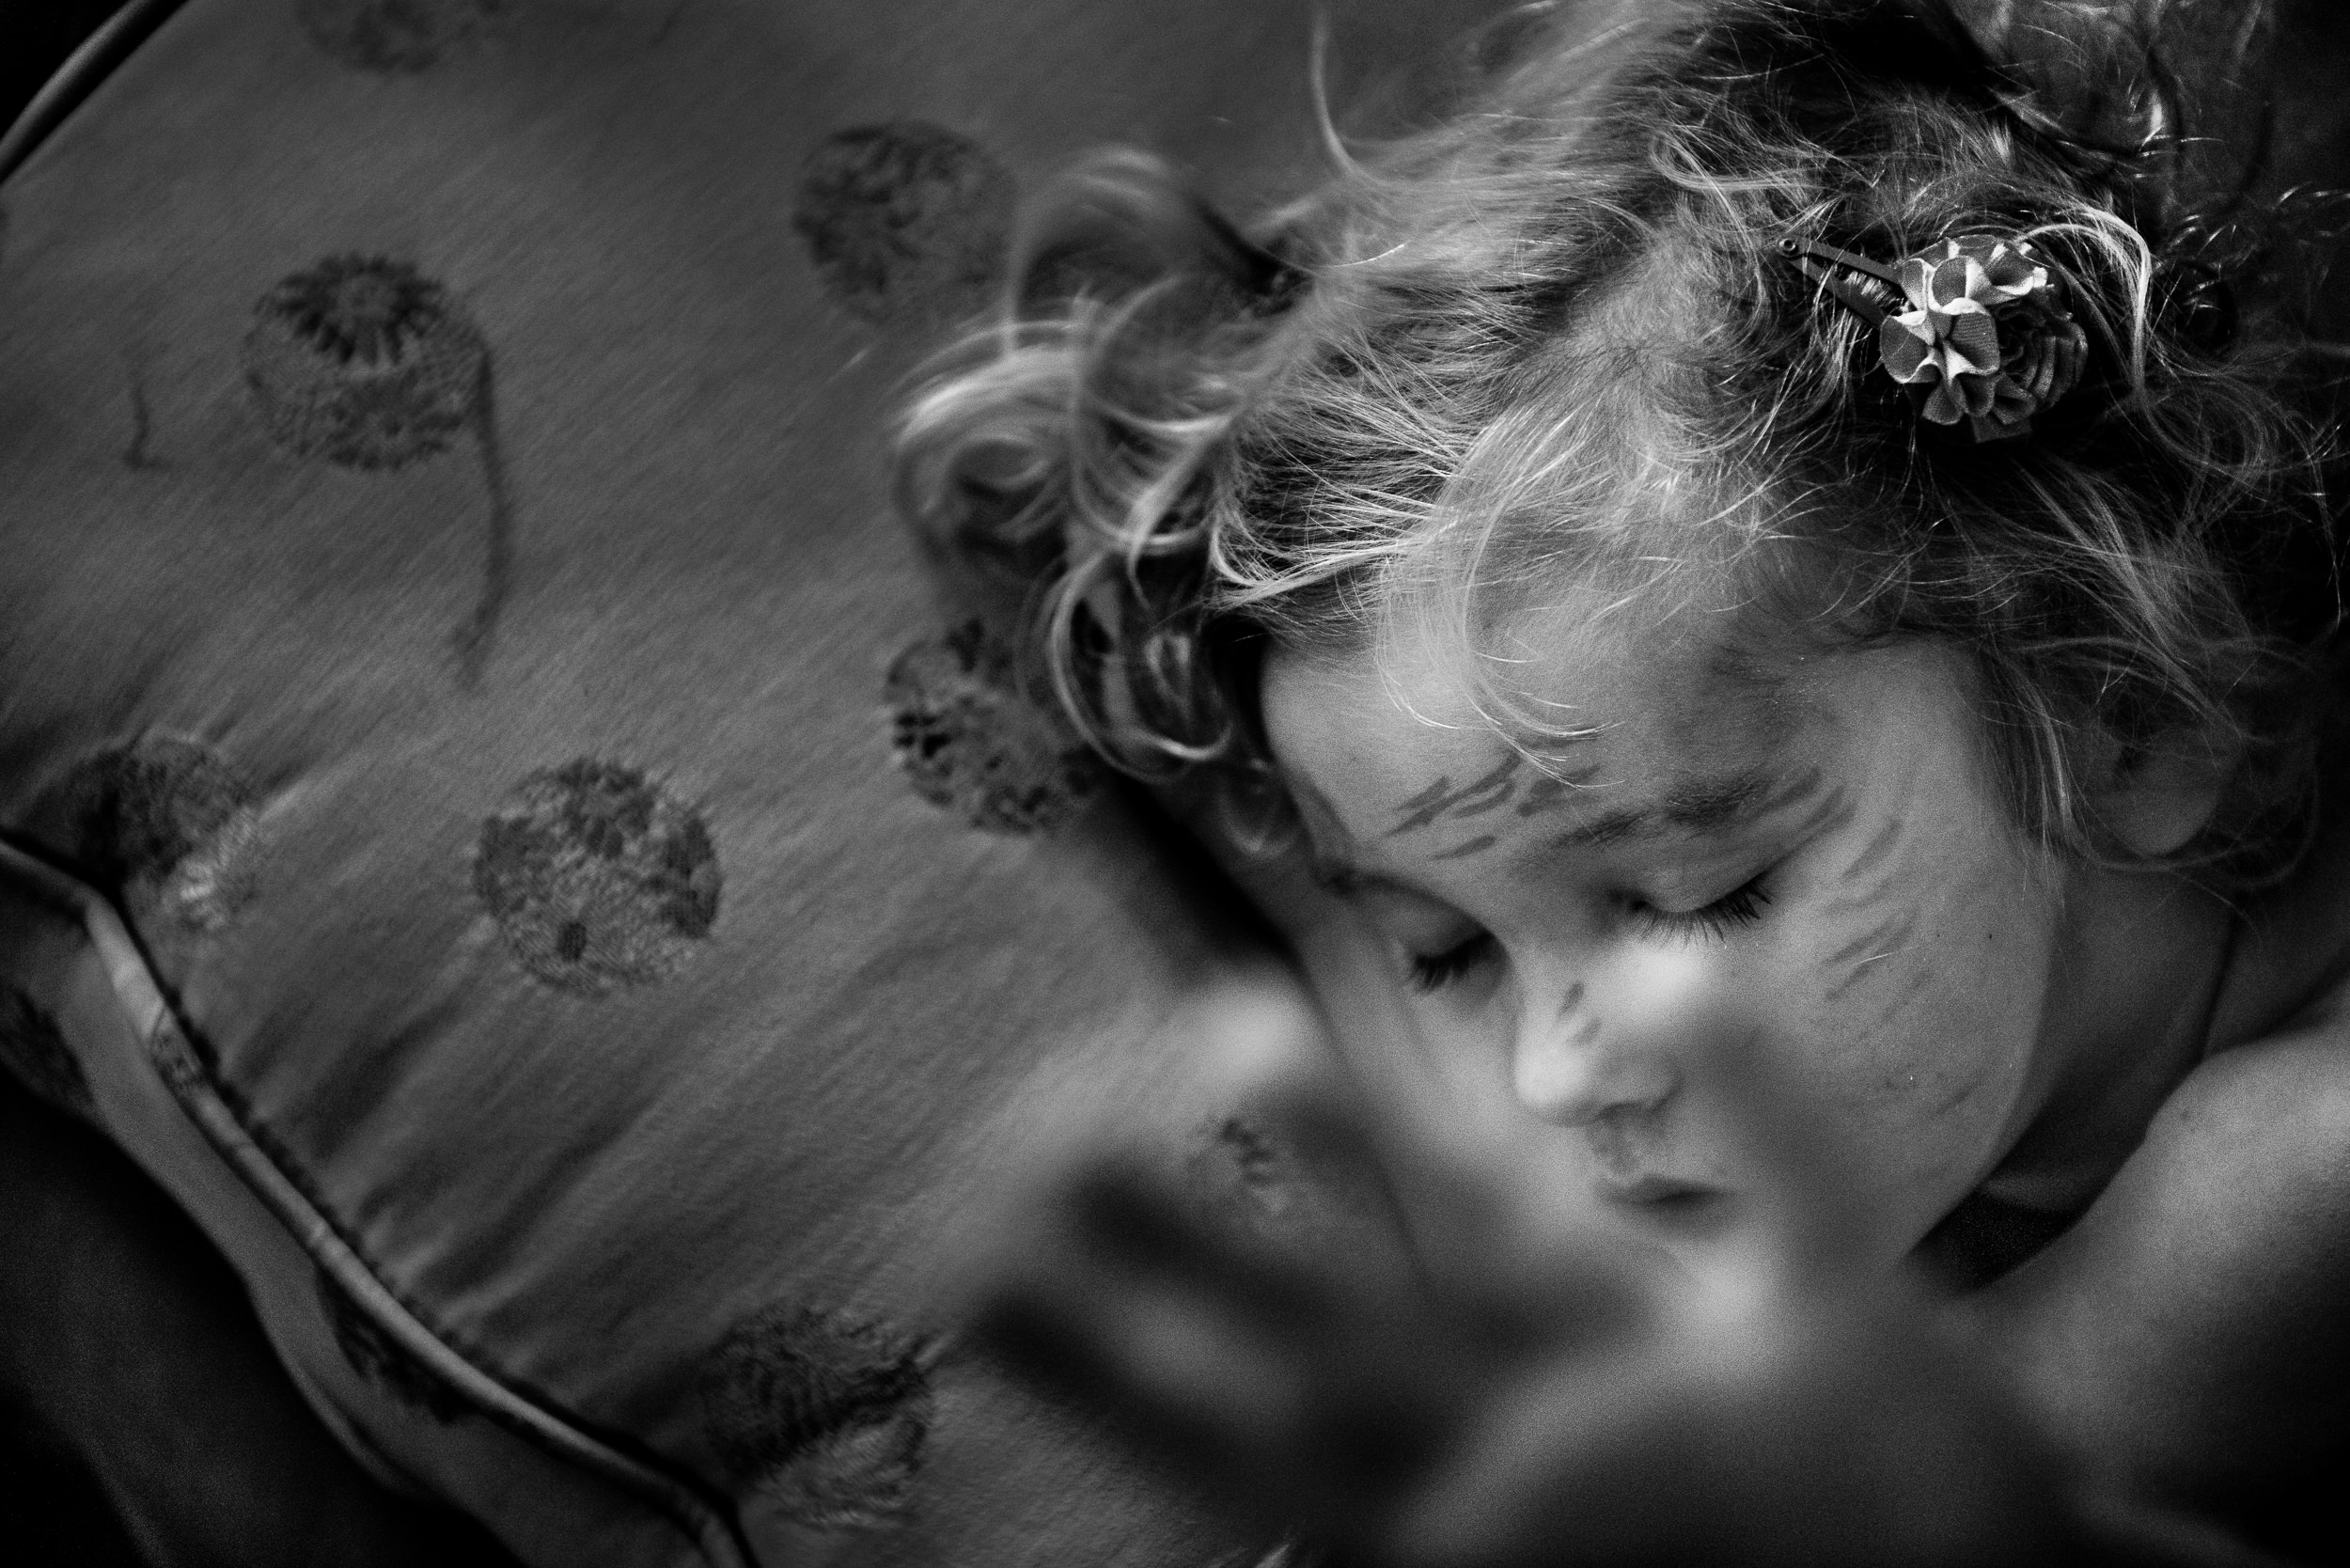 Blog - The Pen & Camera - Gratitude Journal, Inspirational, Writing, Motherhood, Yard-saling, Ukraine, Denver, Colorado - Molly Rees Photo - Black and White Documentary Childhood Photography - sleeping girl with maker on face by M. Menschel